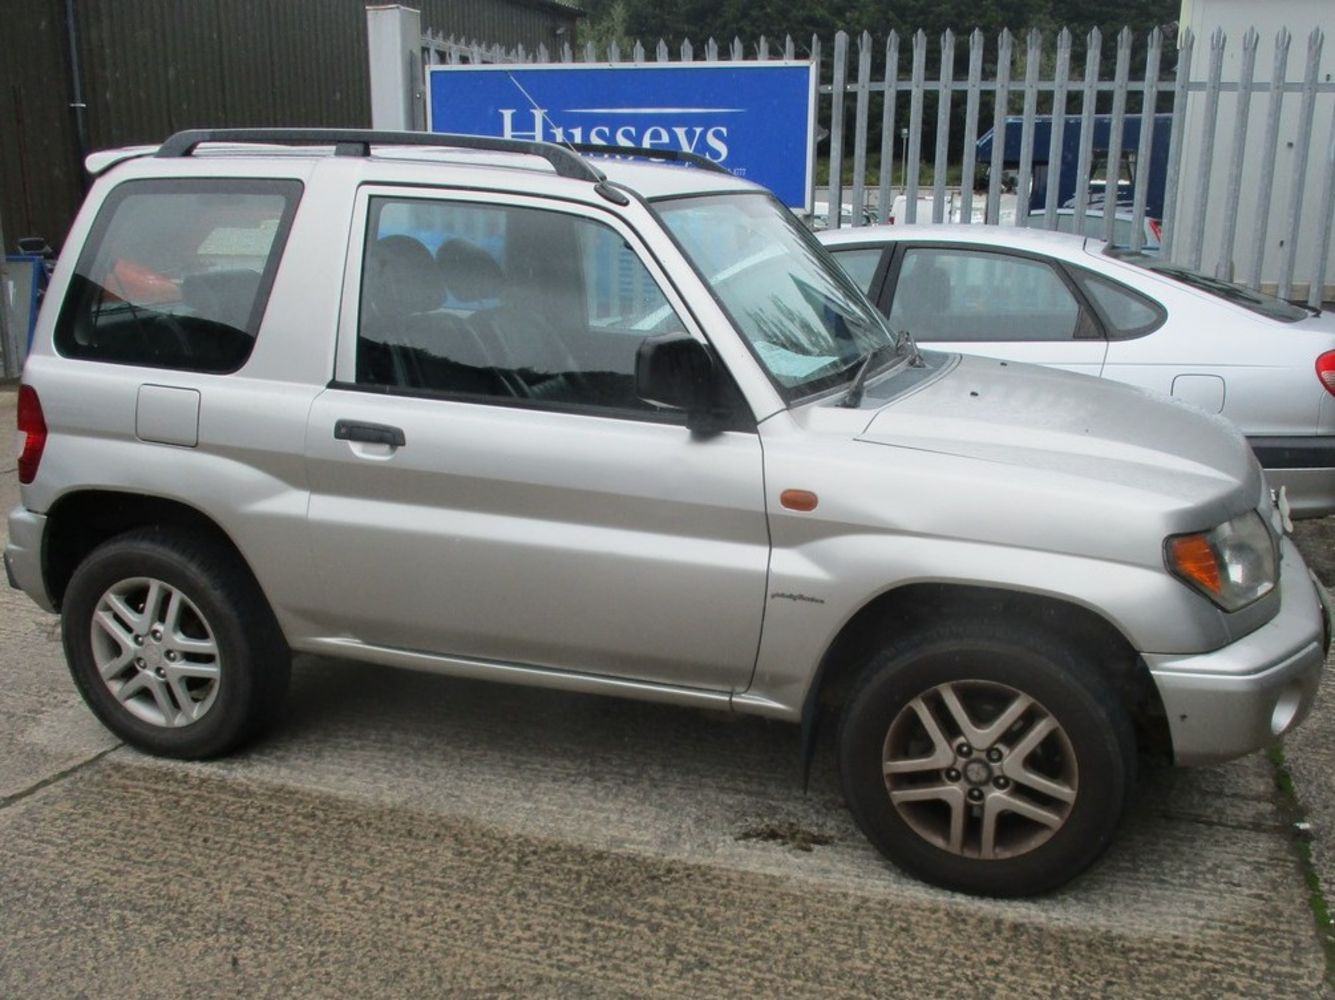 Exeter Car & Commercial Vehicle Auction. Closes from 2pm Wednesday 30th September 2020